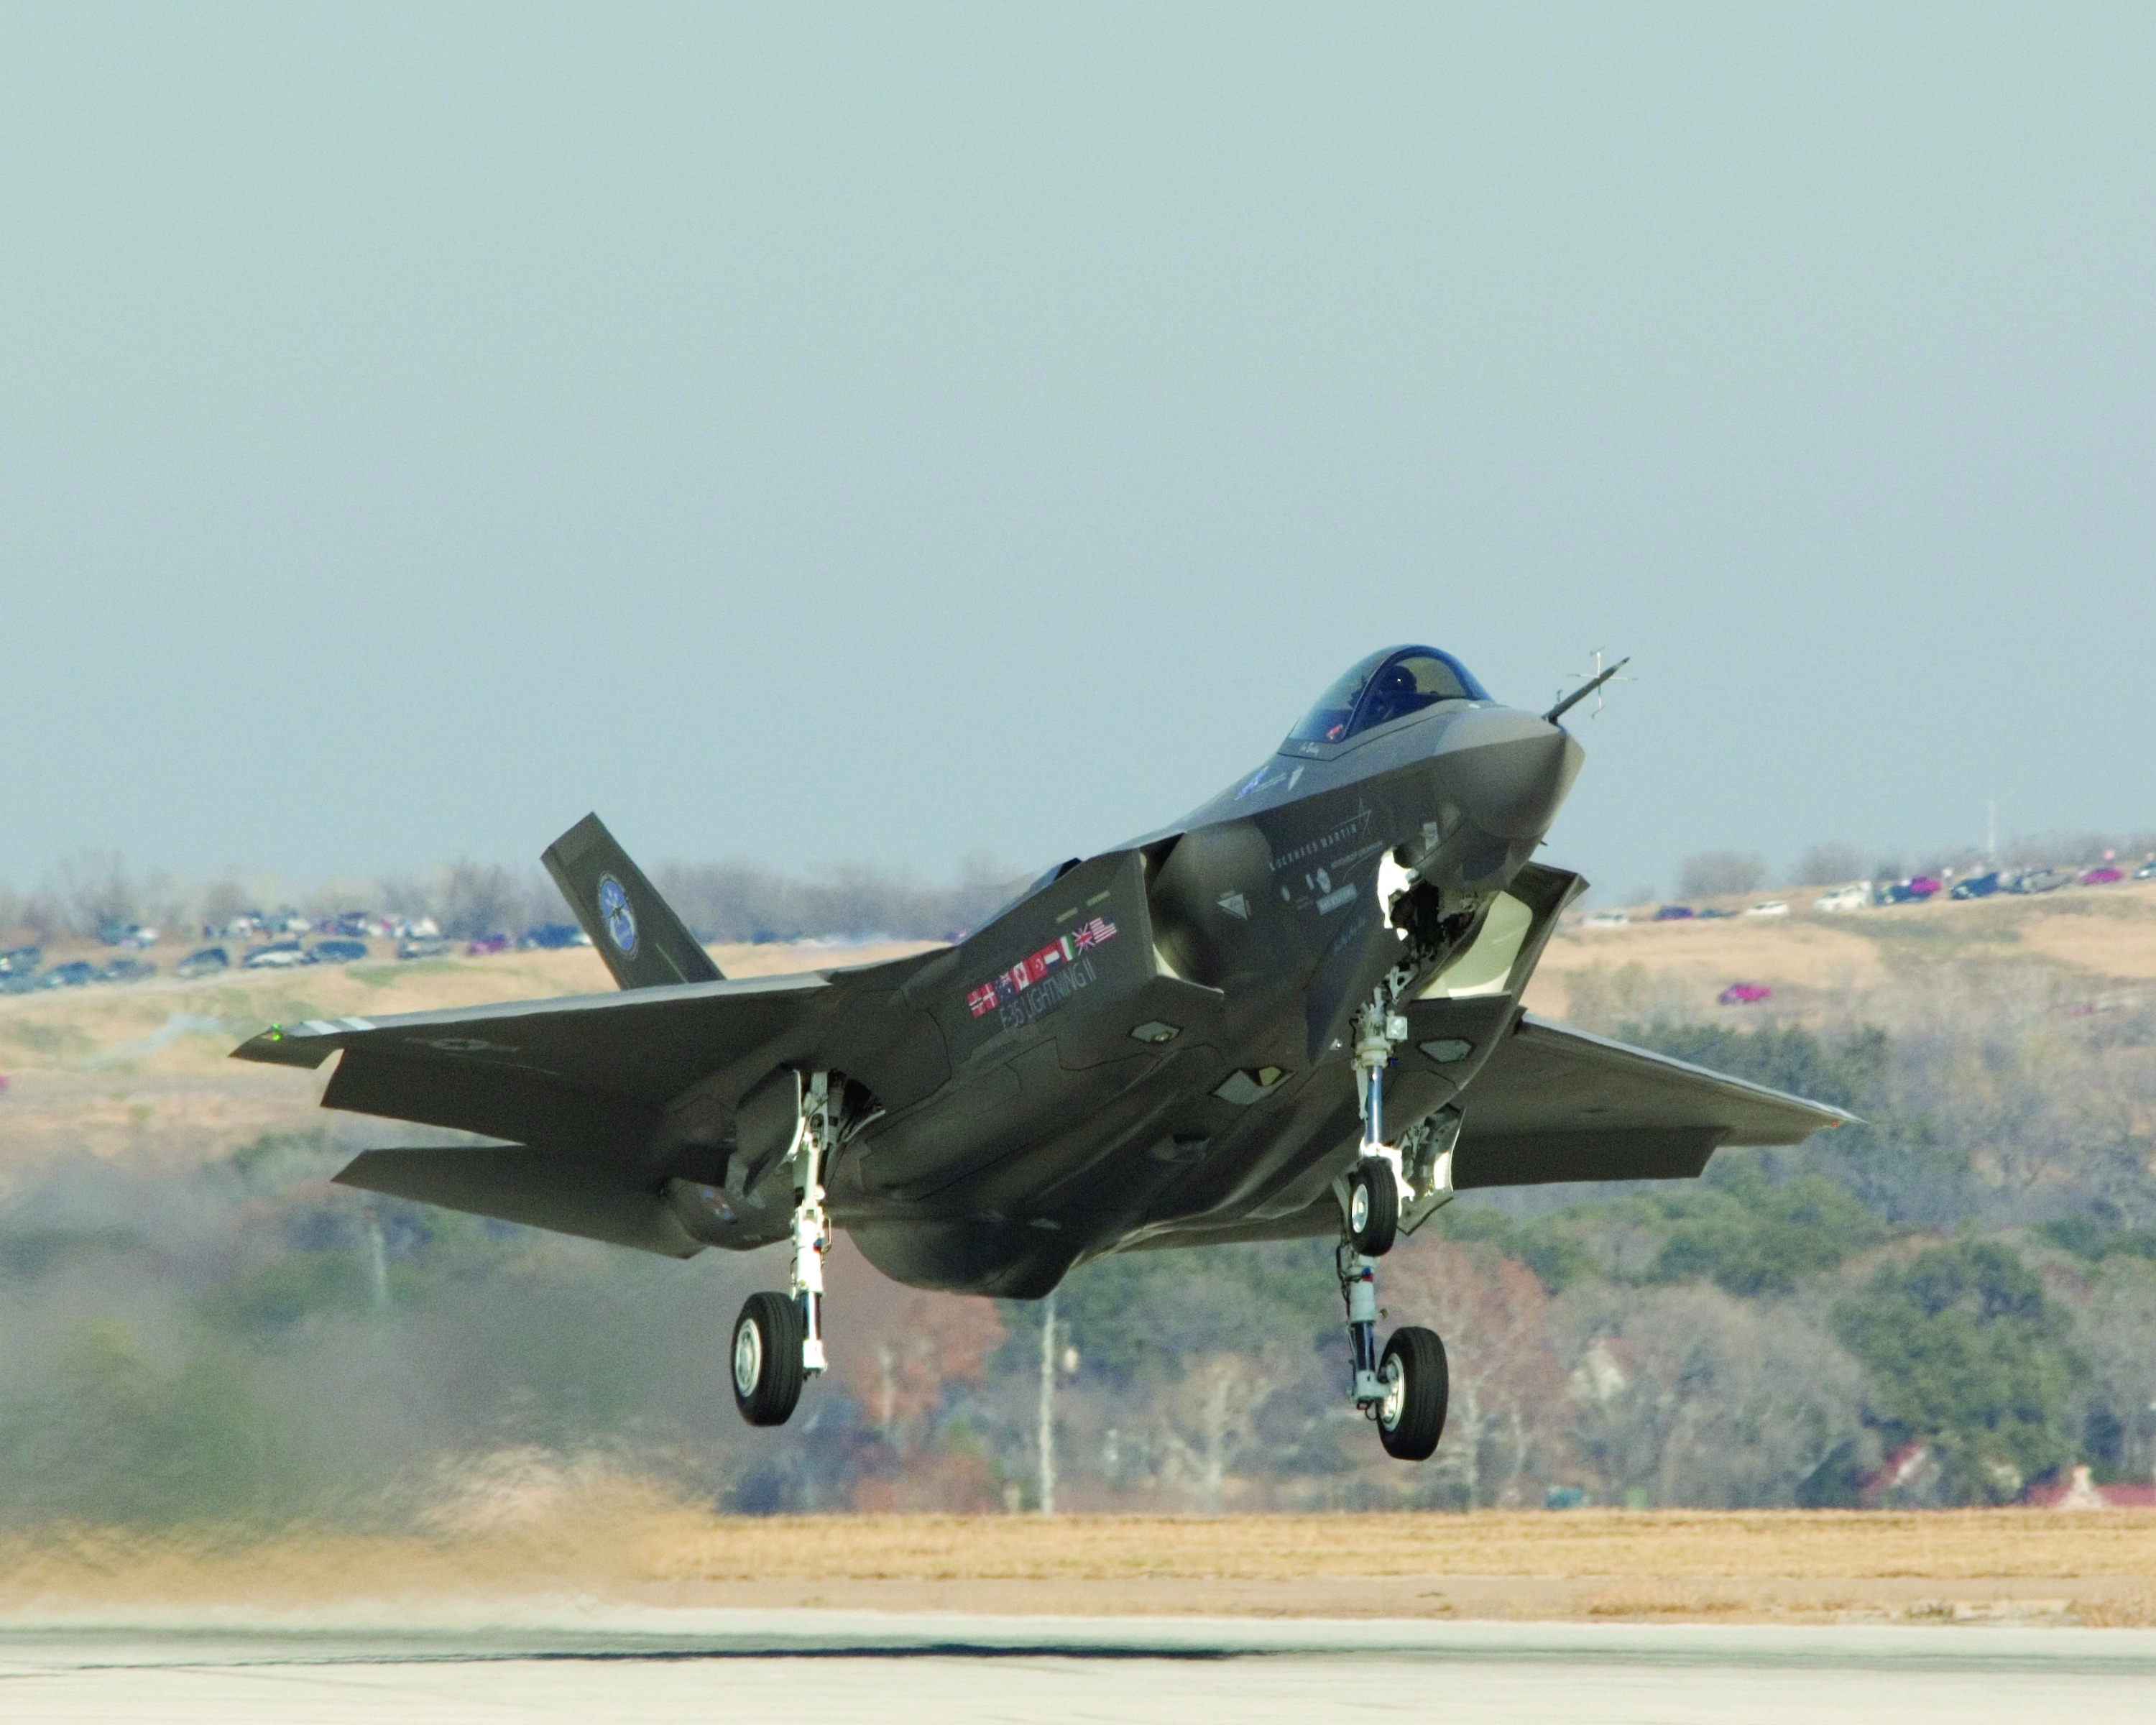 Manufacturing the F35